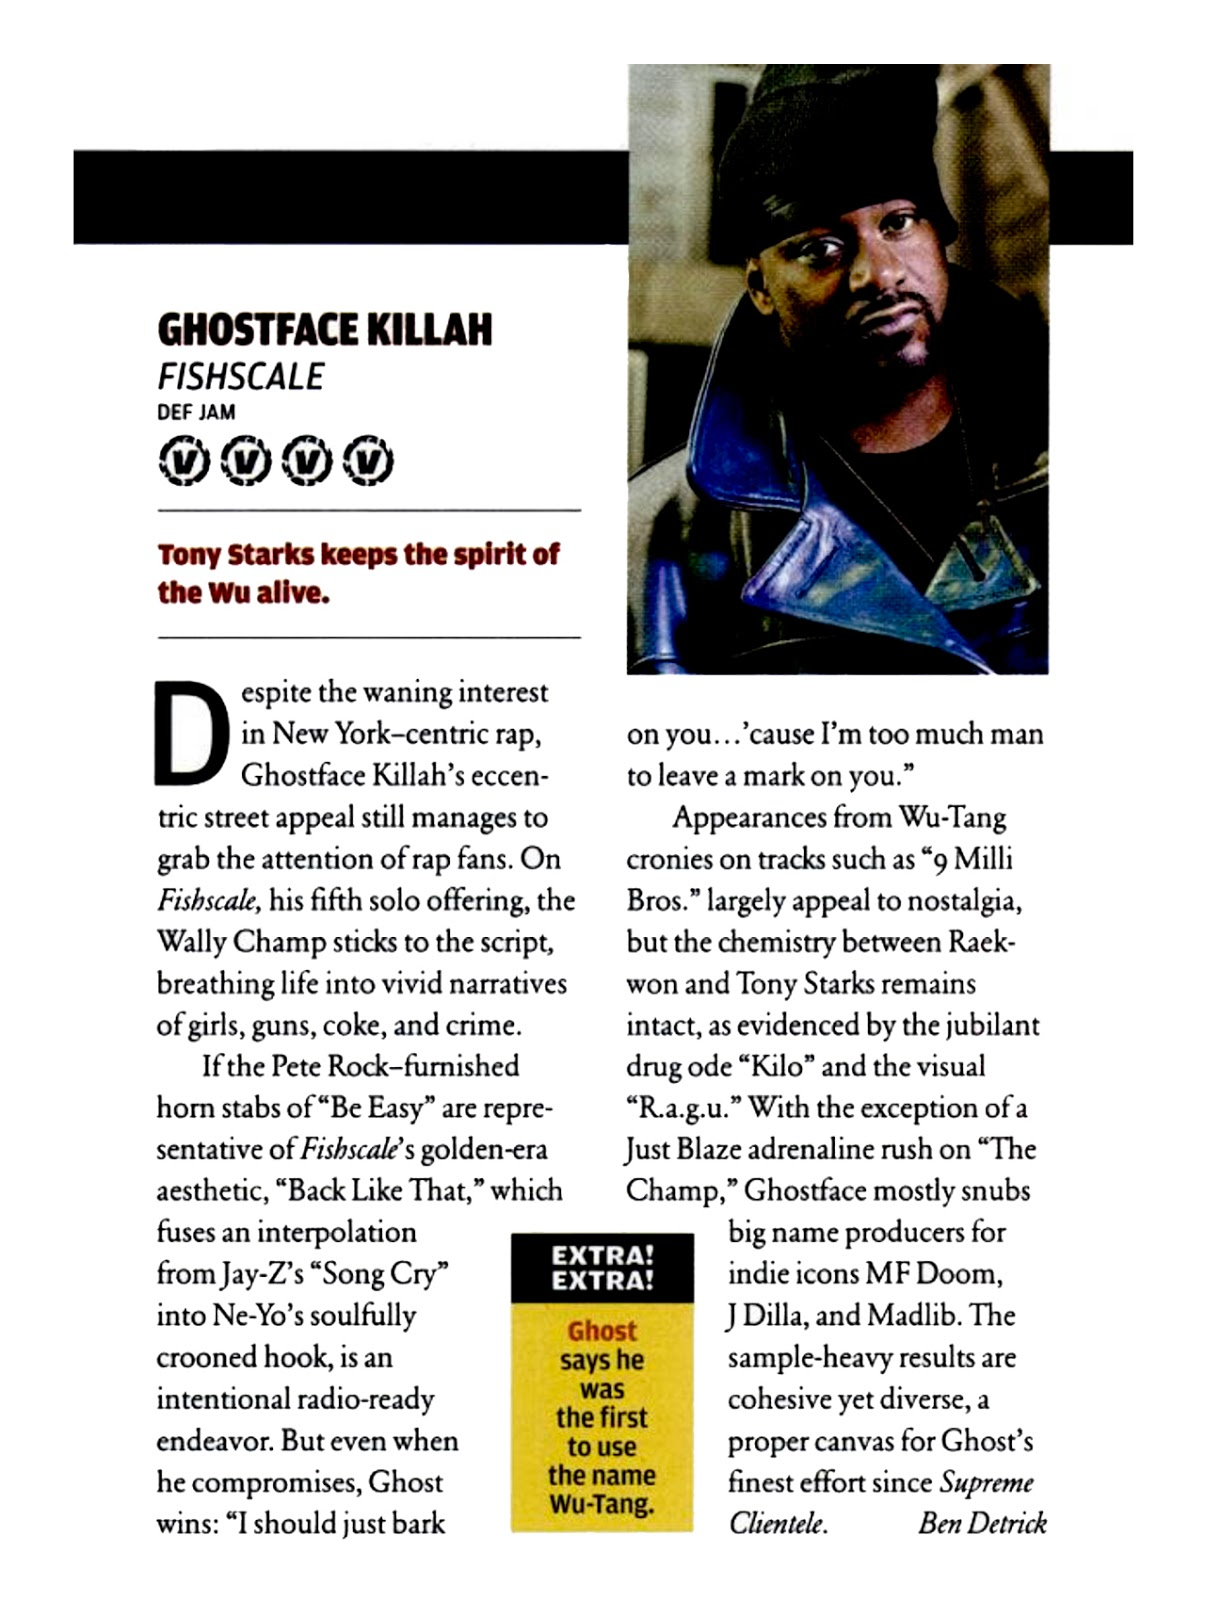 Ghostface Killah Fishscale Vibe April 2006 Album Review